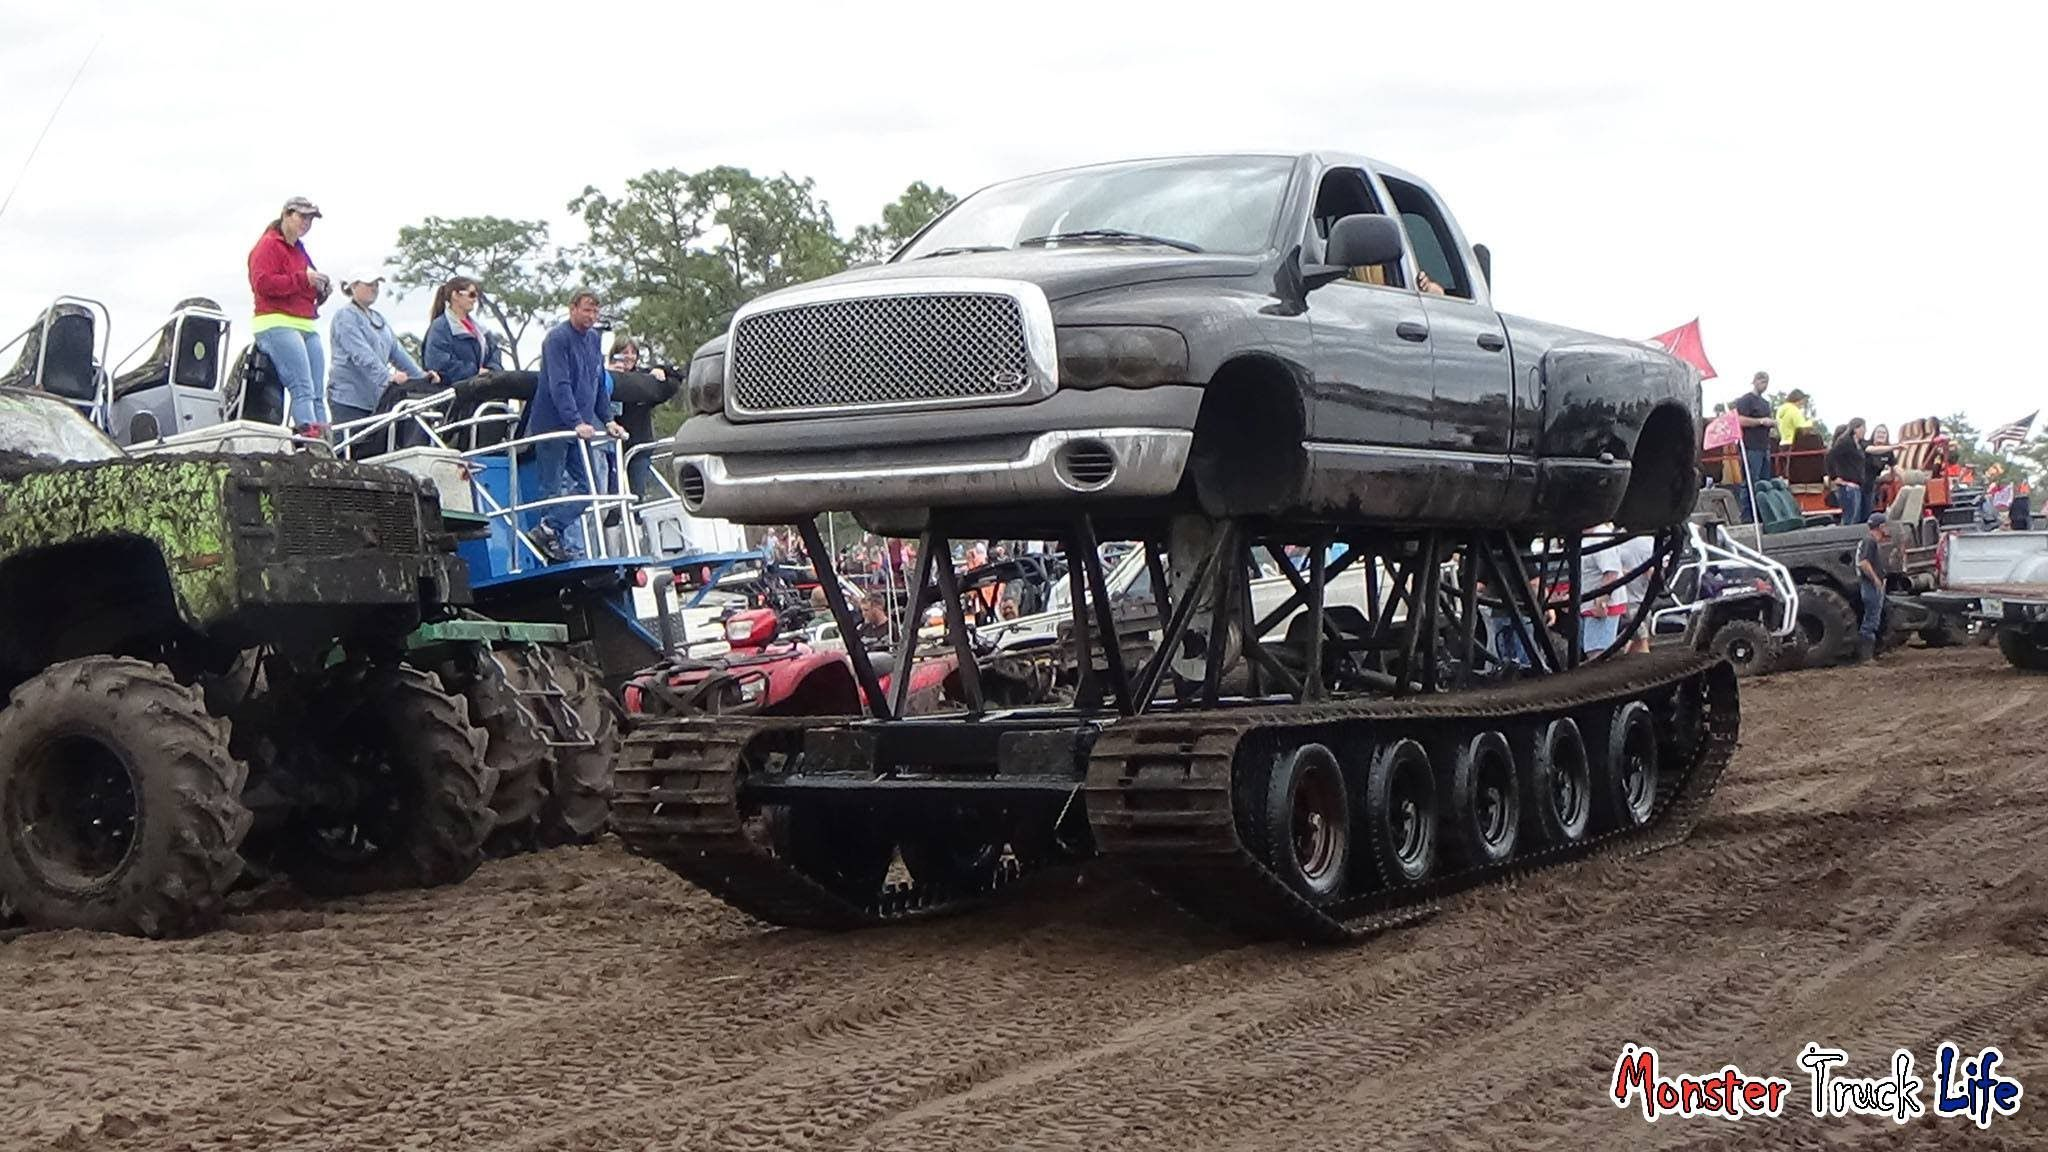 Tracted Dodge Quad Cab Triple Canopy Ranch 2 21 2015 - Monster .  sc 1 st  Pinterest & Tracted Dodge Quad Cab Triple Canopy Ranch 2 21 2015 - Monster ...